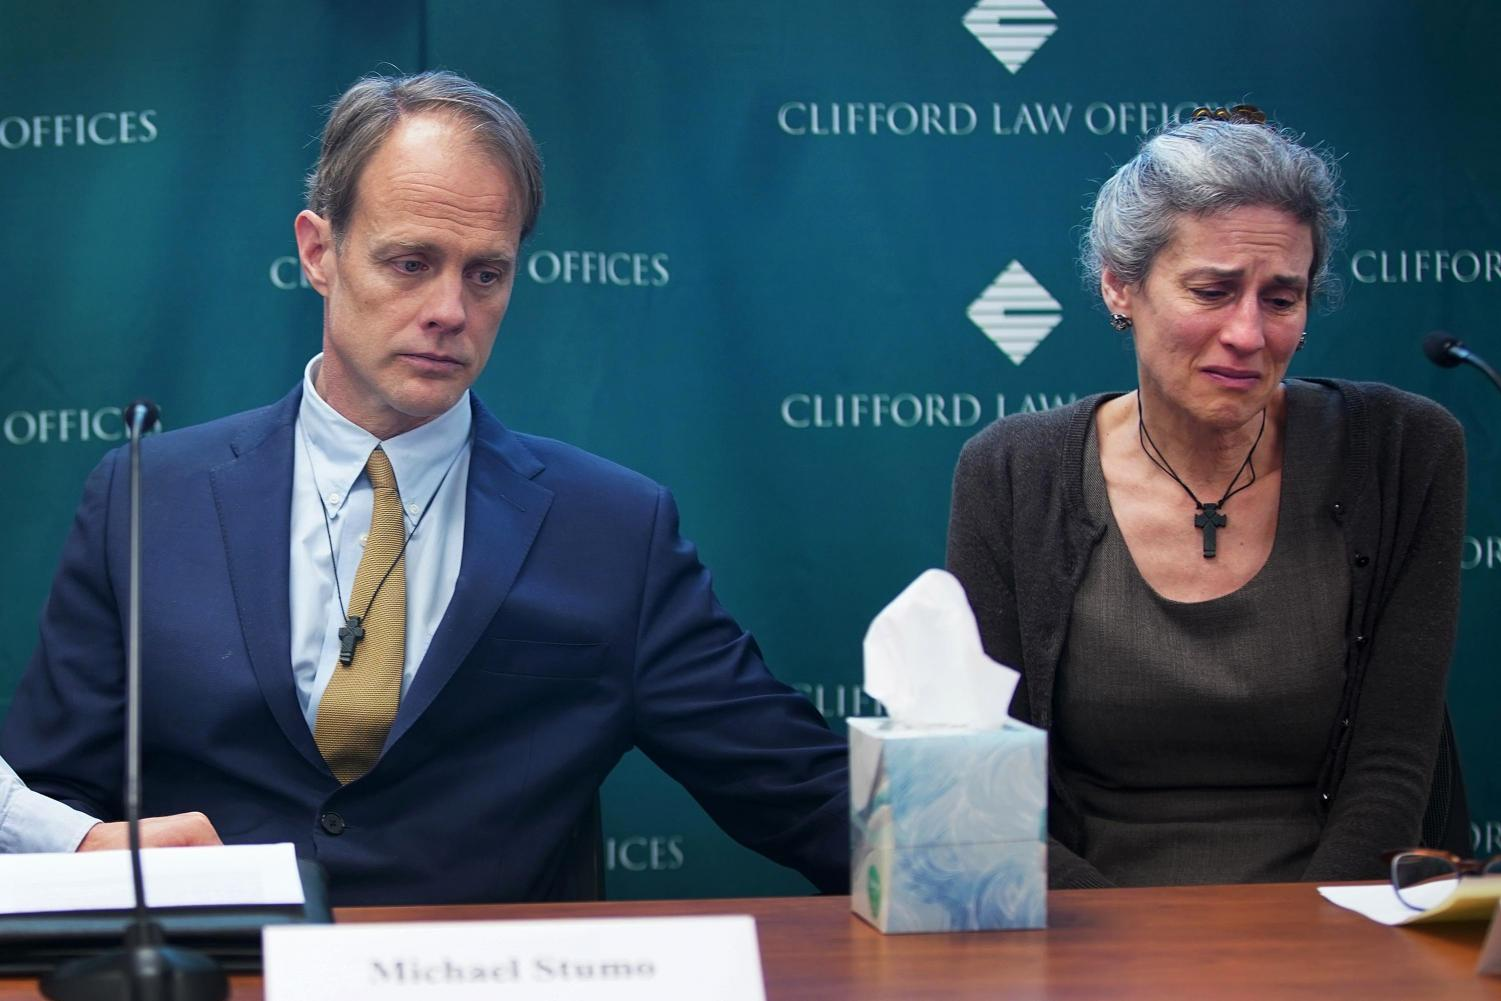 Michael Stumo and Nadia Milleron, the parents of Samya Stumo, who was killed in the crash of Ethiopian Airlines Flight 302, attend a press conference on April 04, 2019 in Chicago, Ill.